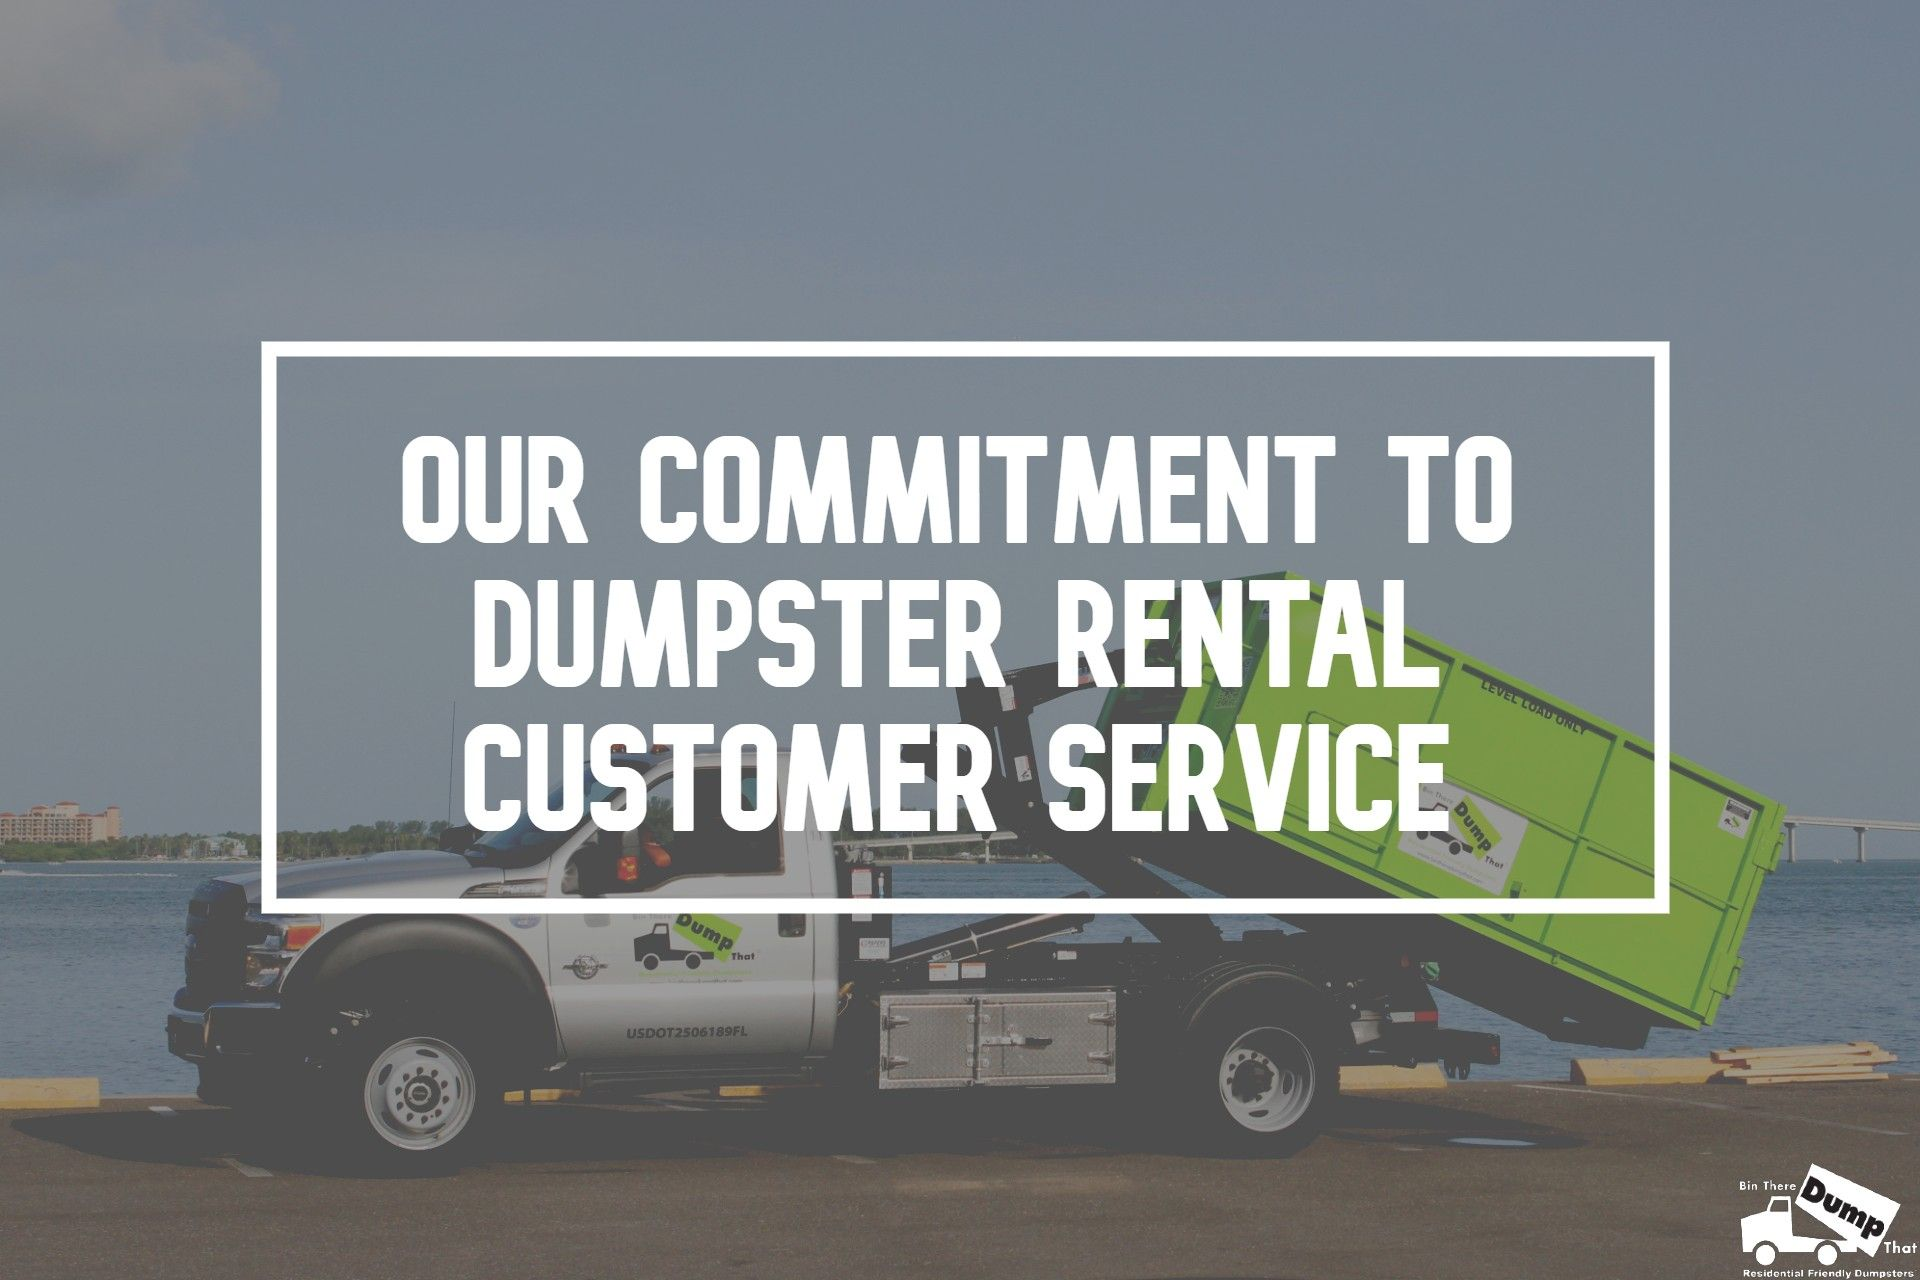 Customer Service Tips In 2020 Dumpster Rental Dumpster Rental